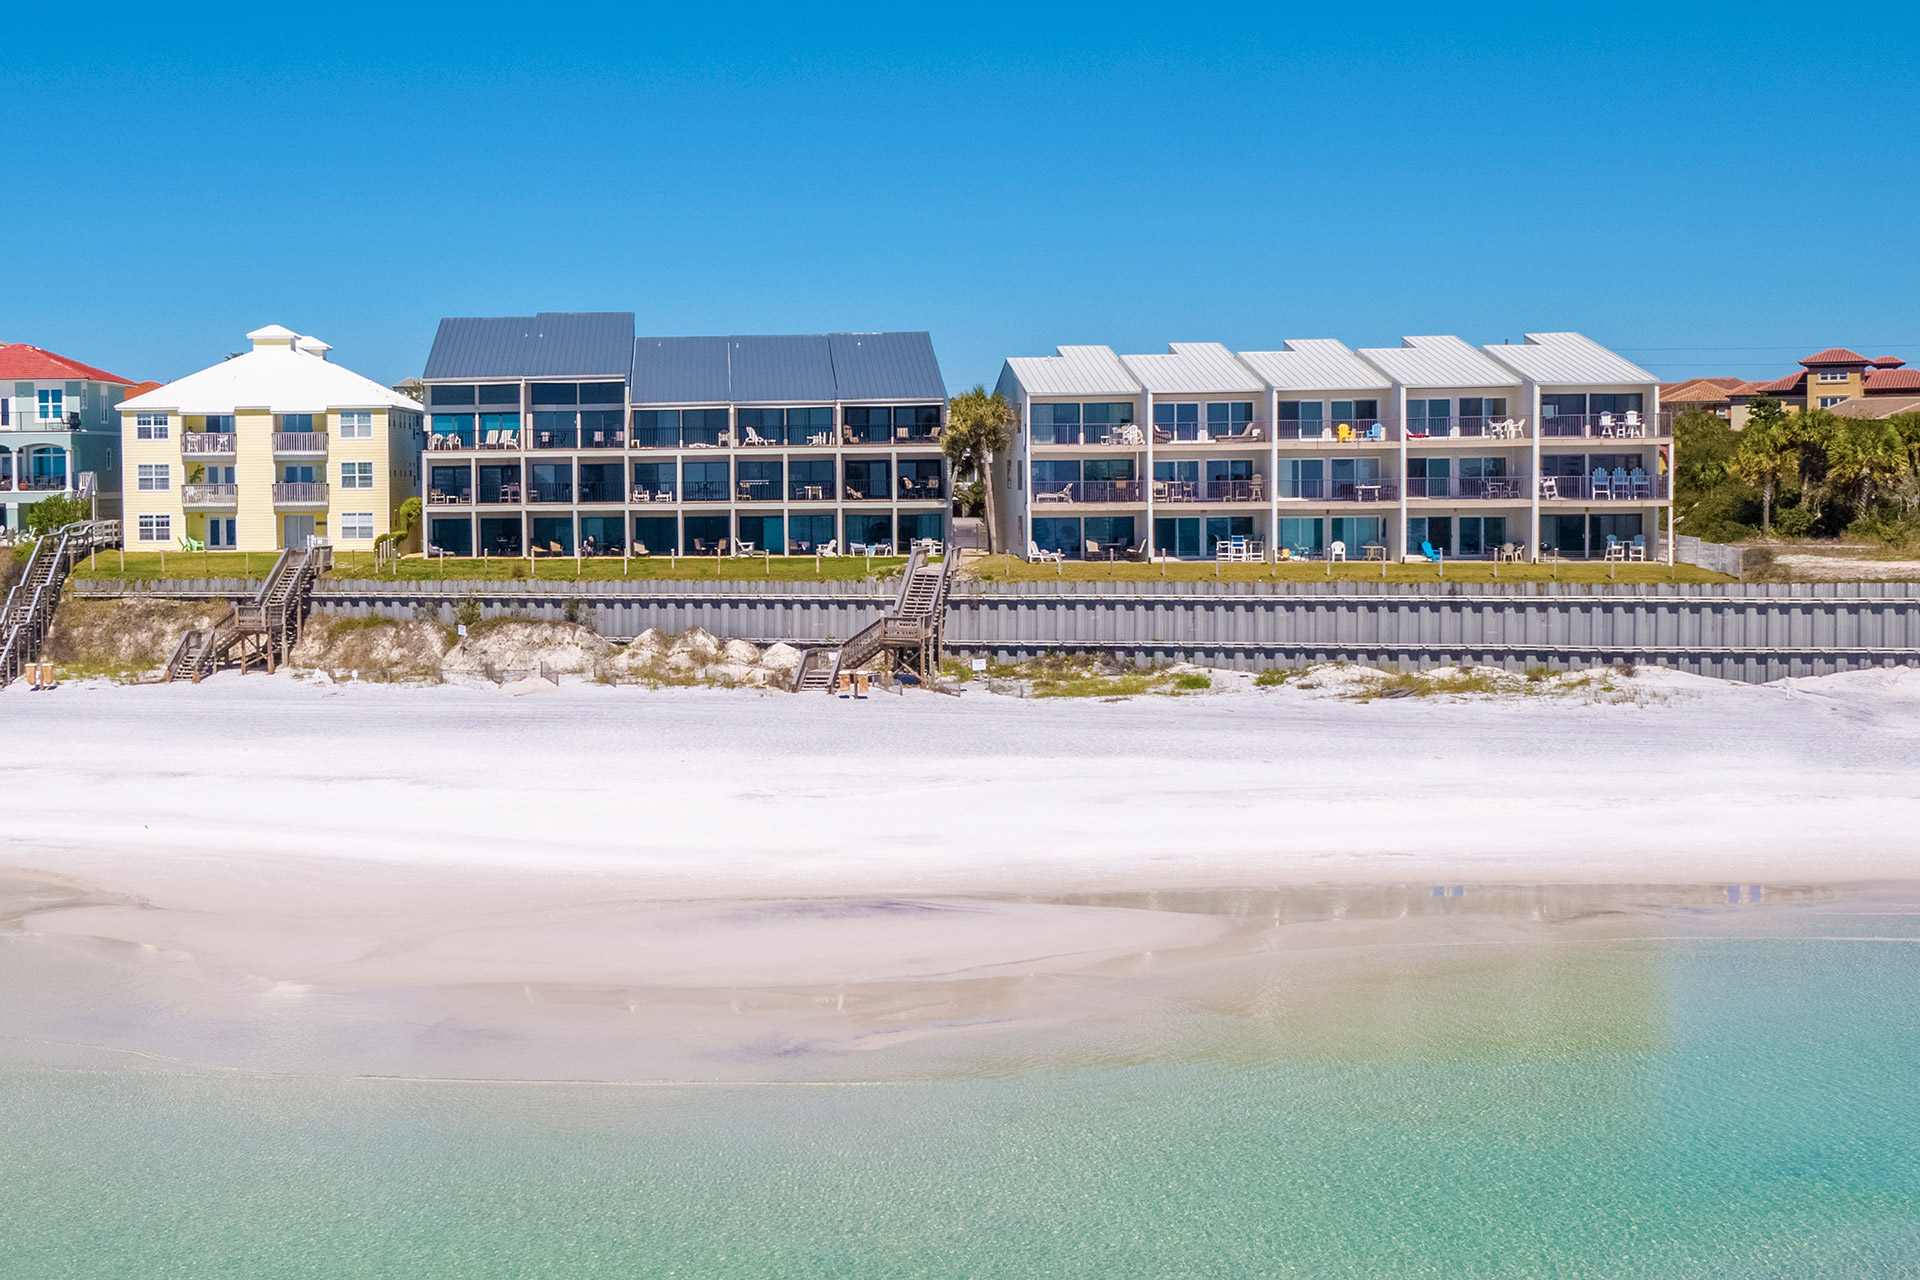 30A Vacation Rentals Selling out for 2020